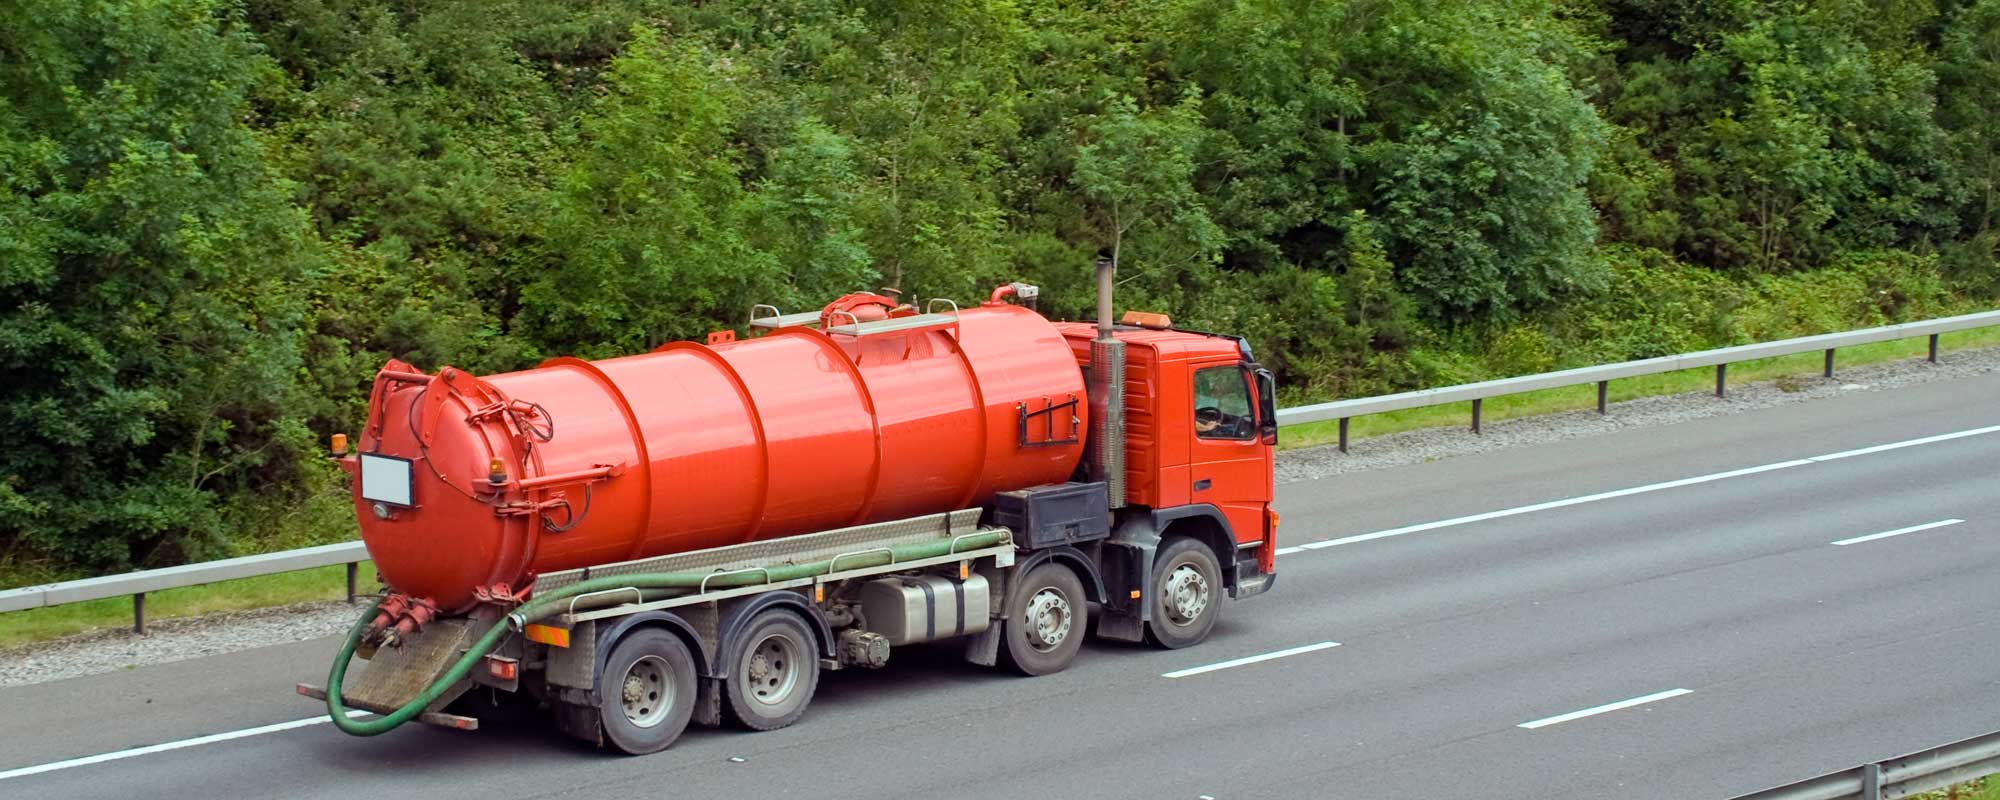 red tanker